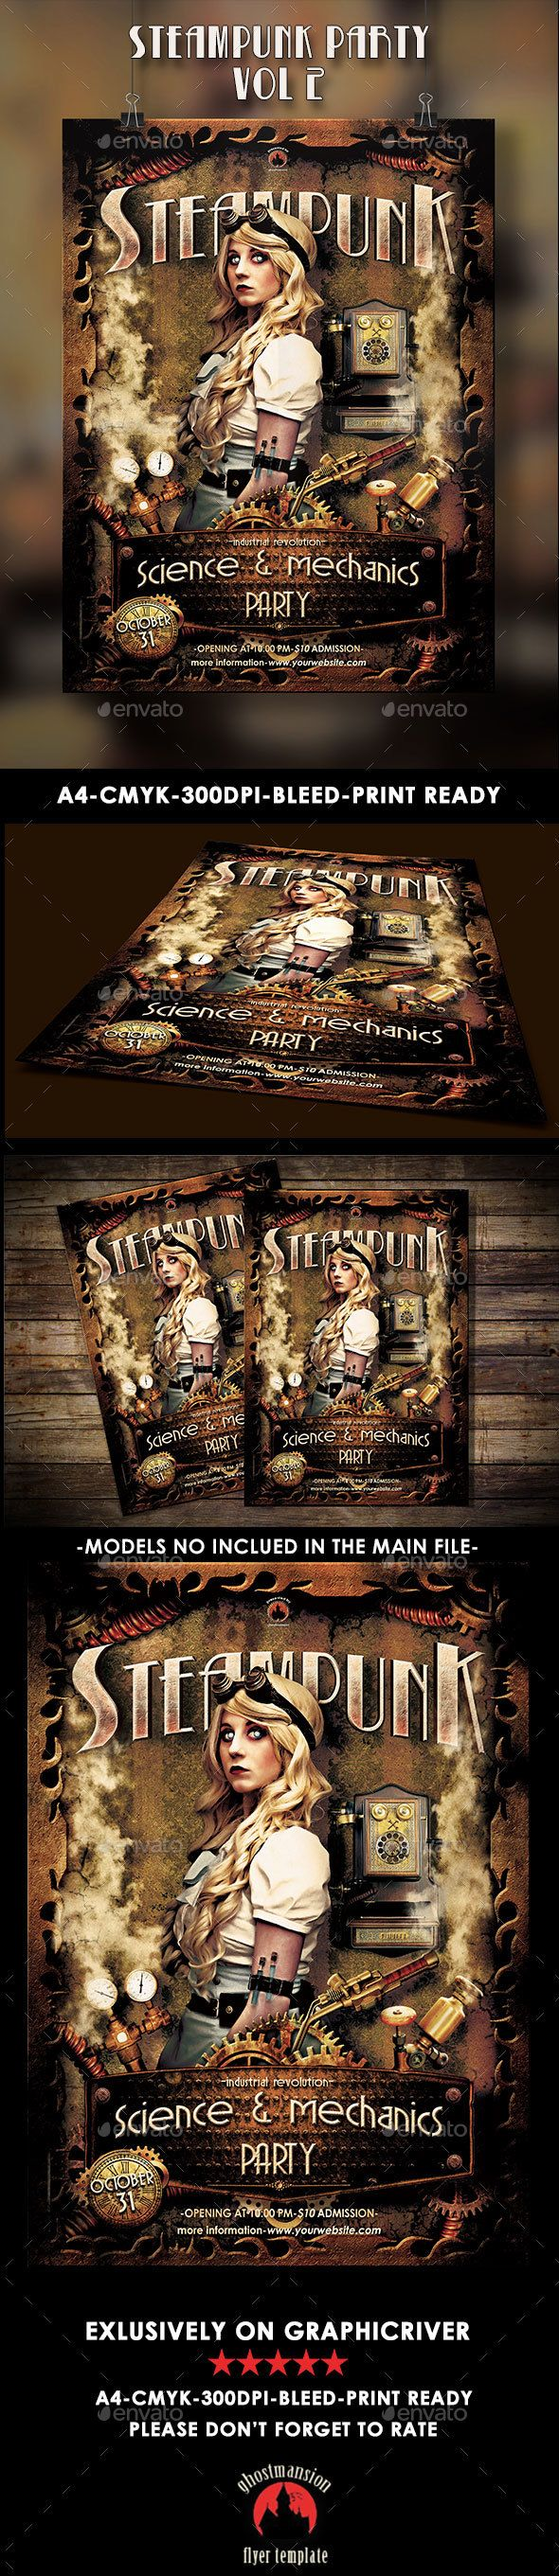 Steampunk Party Poster Template Vol 2